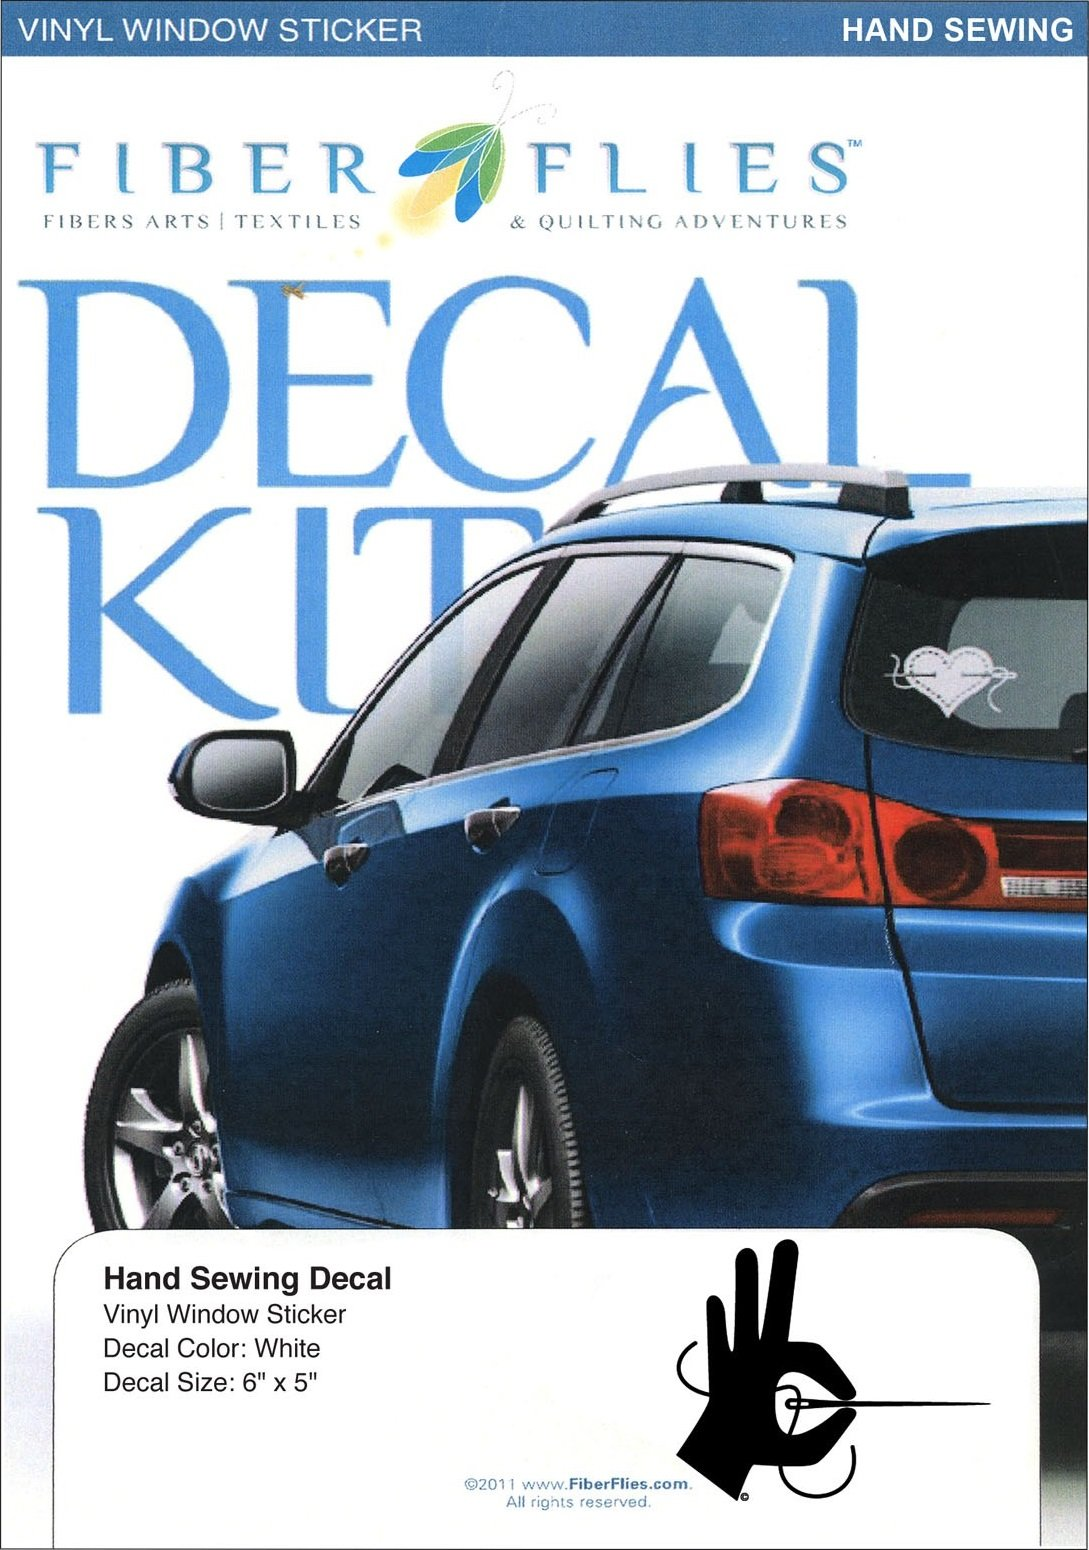 Decal Kit - Hand Sewing